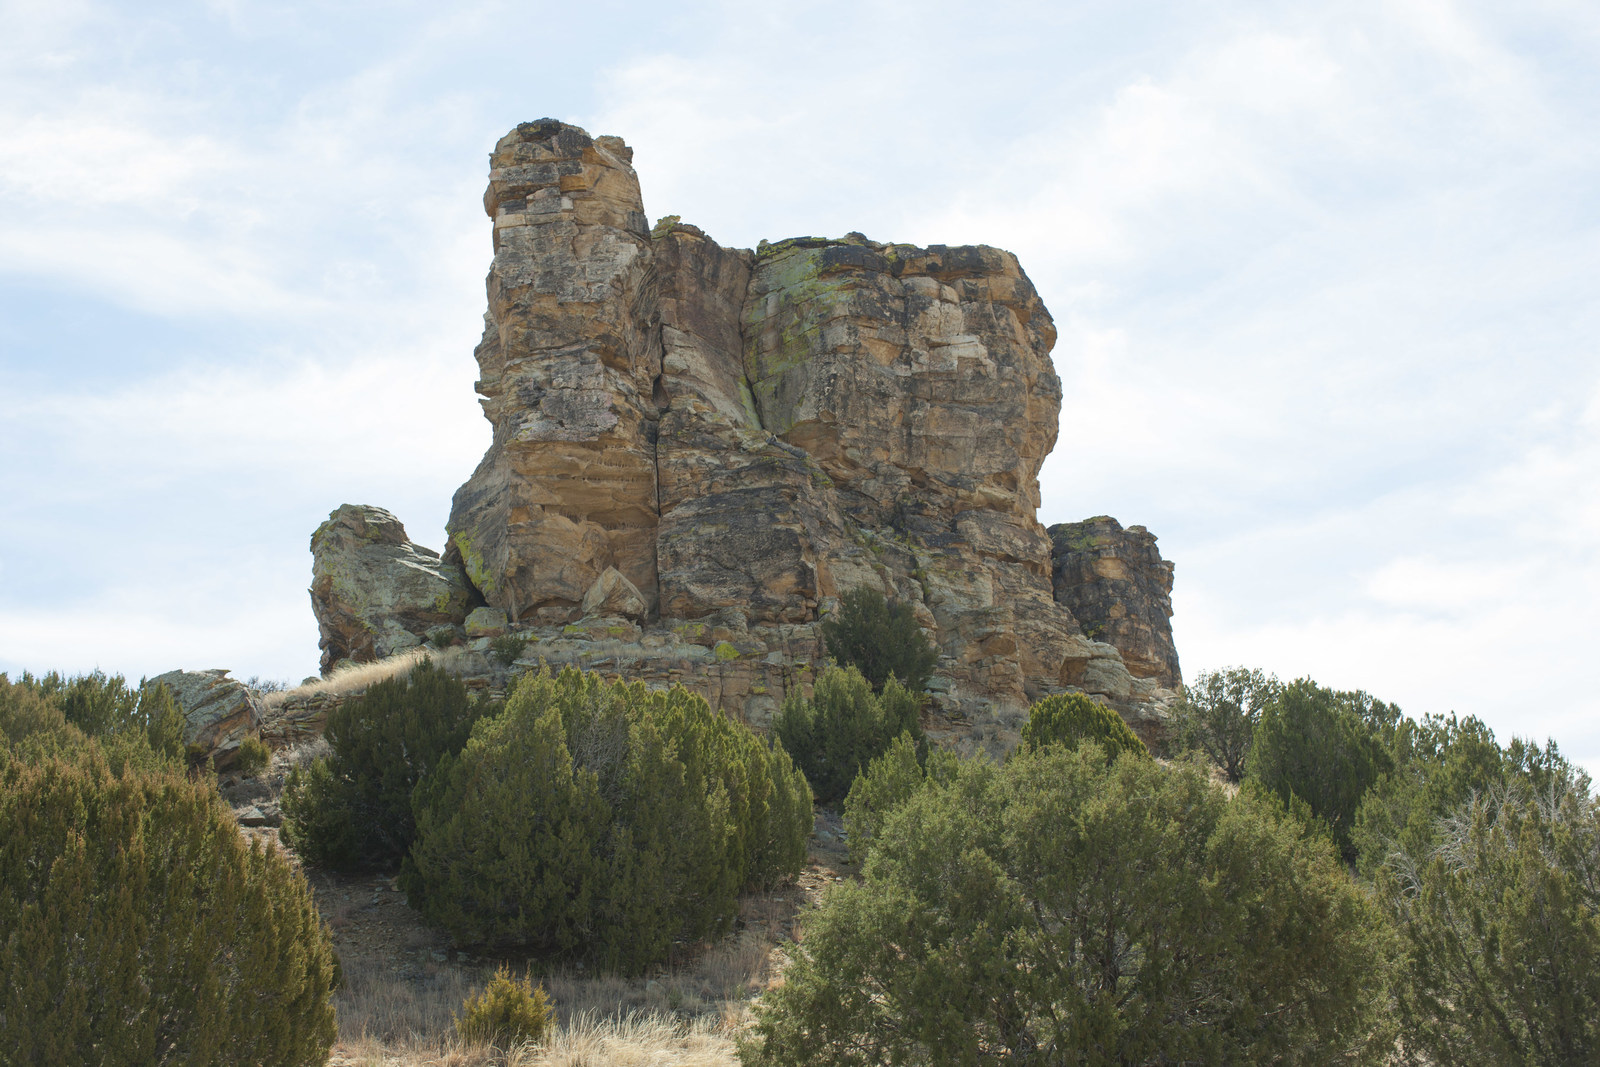 Windsplitter Rock - a landmark in the new Wild Animal Sanctuary refuge.